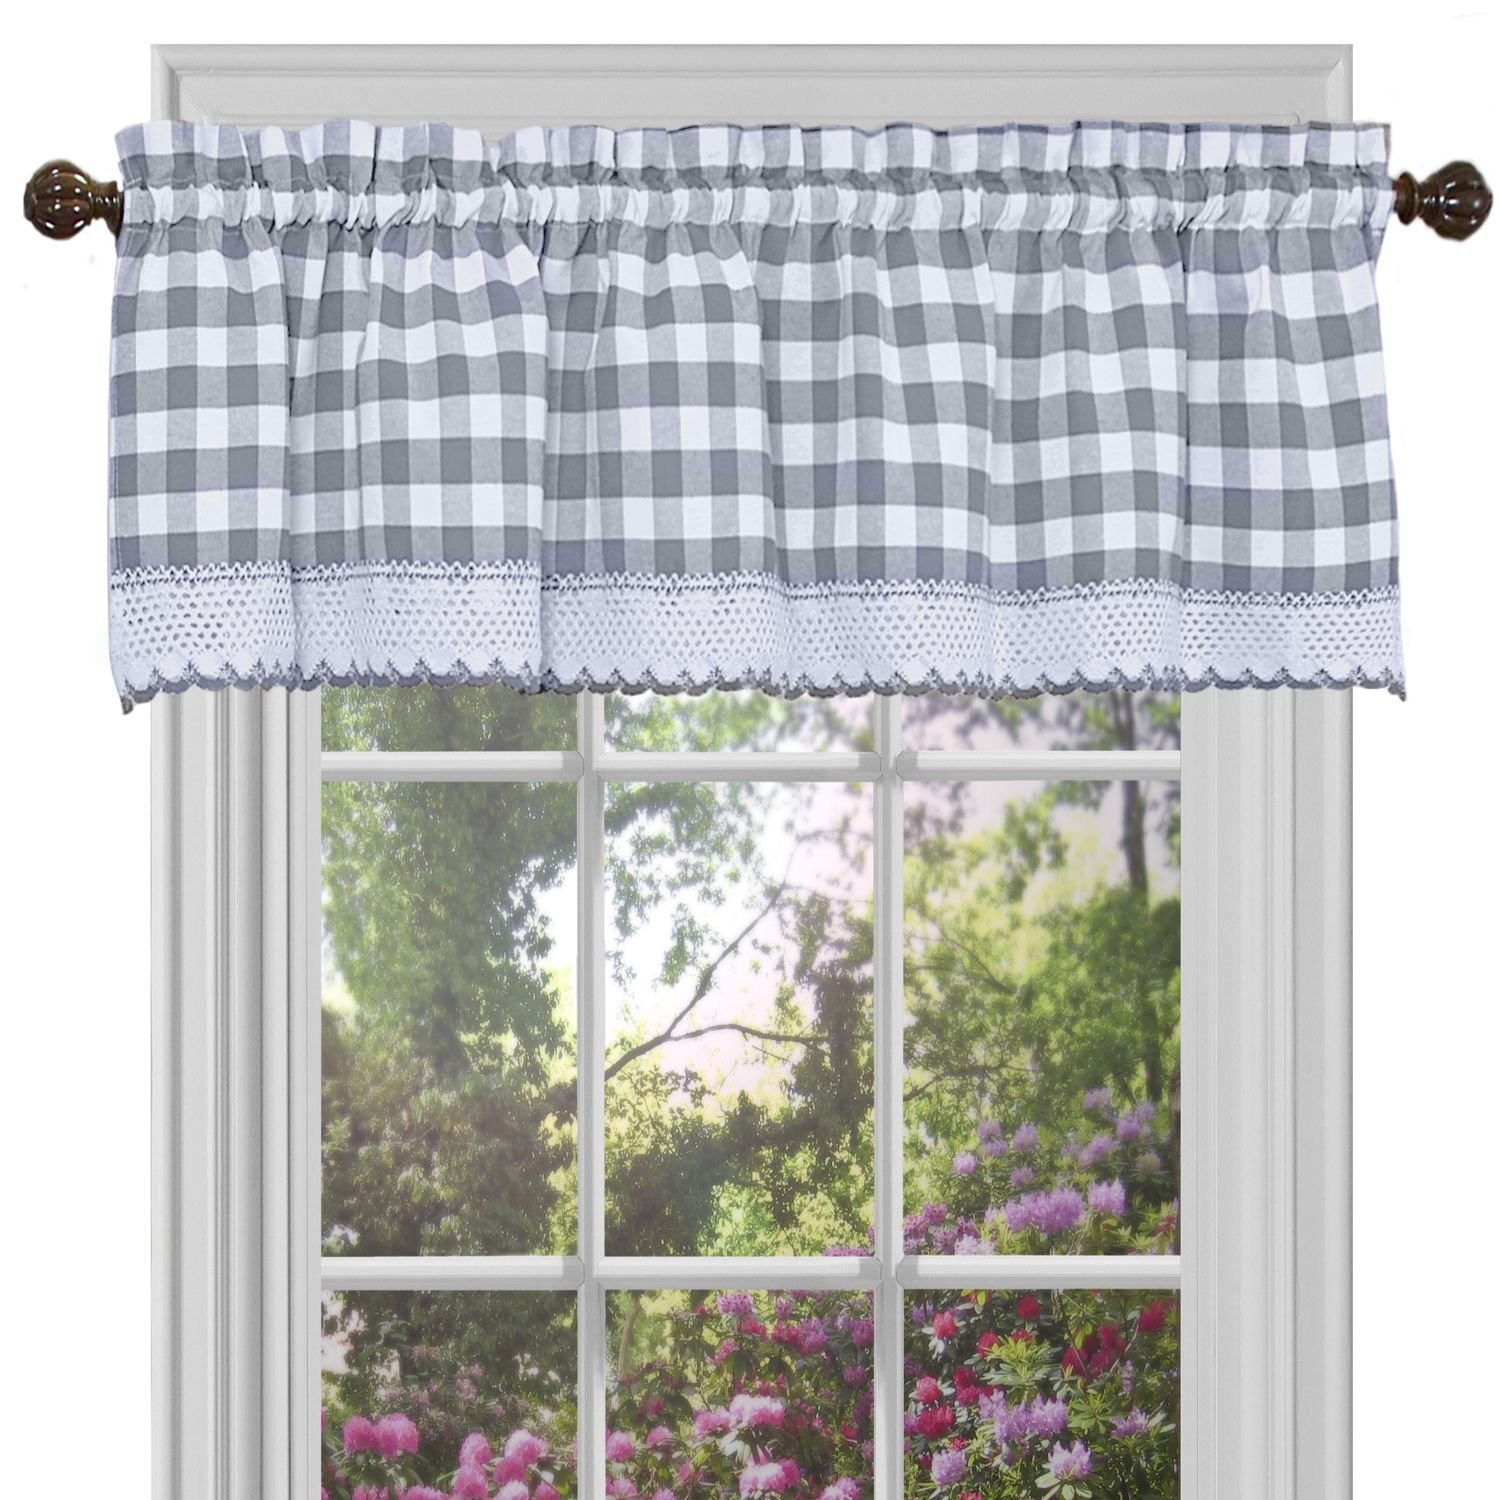 "Achim Home Furnishings Buffalo Check Window Curtain Valance, 58"" x 14"", Grey & White"